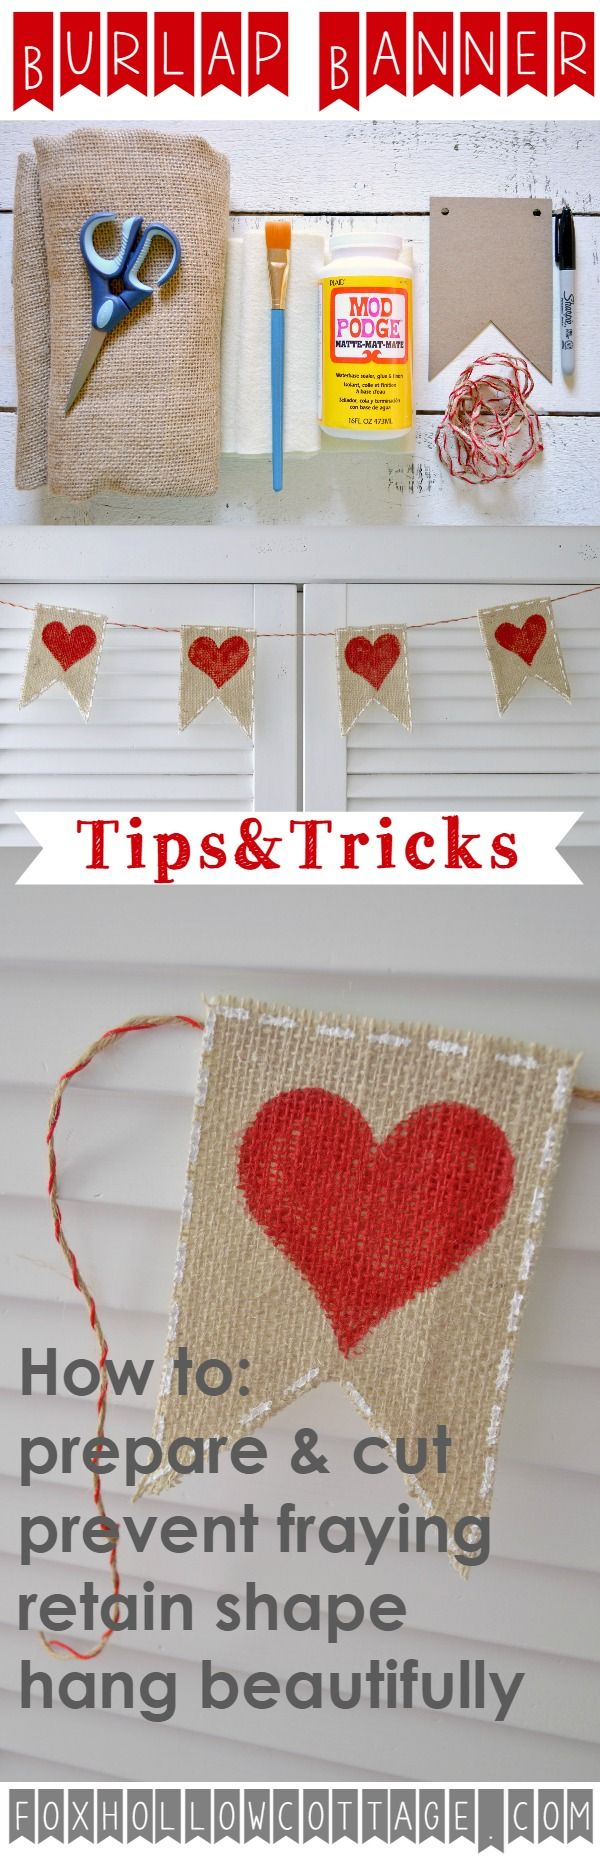 Burlap Banner diy craft tutorial with supply list includes tips and tricks for a beautiful result foxhollowcottage.com